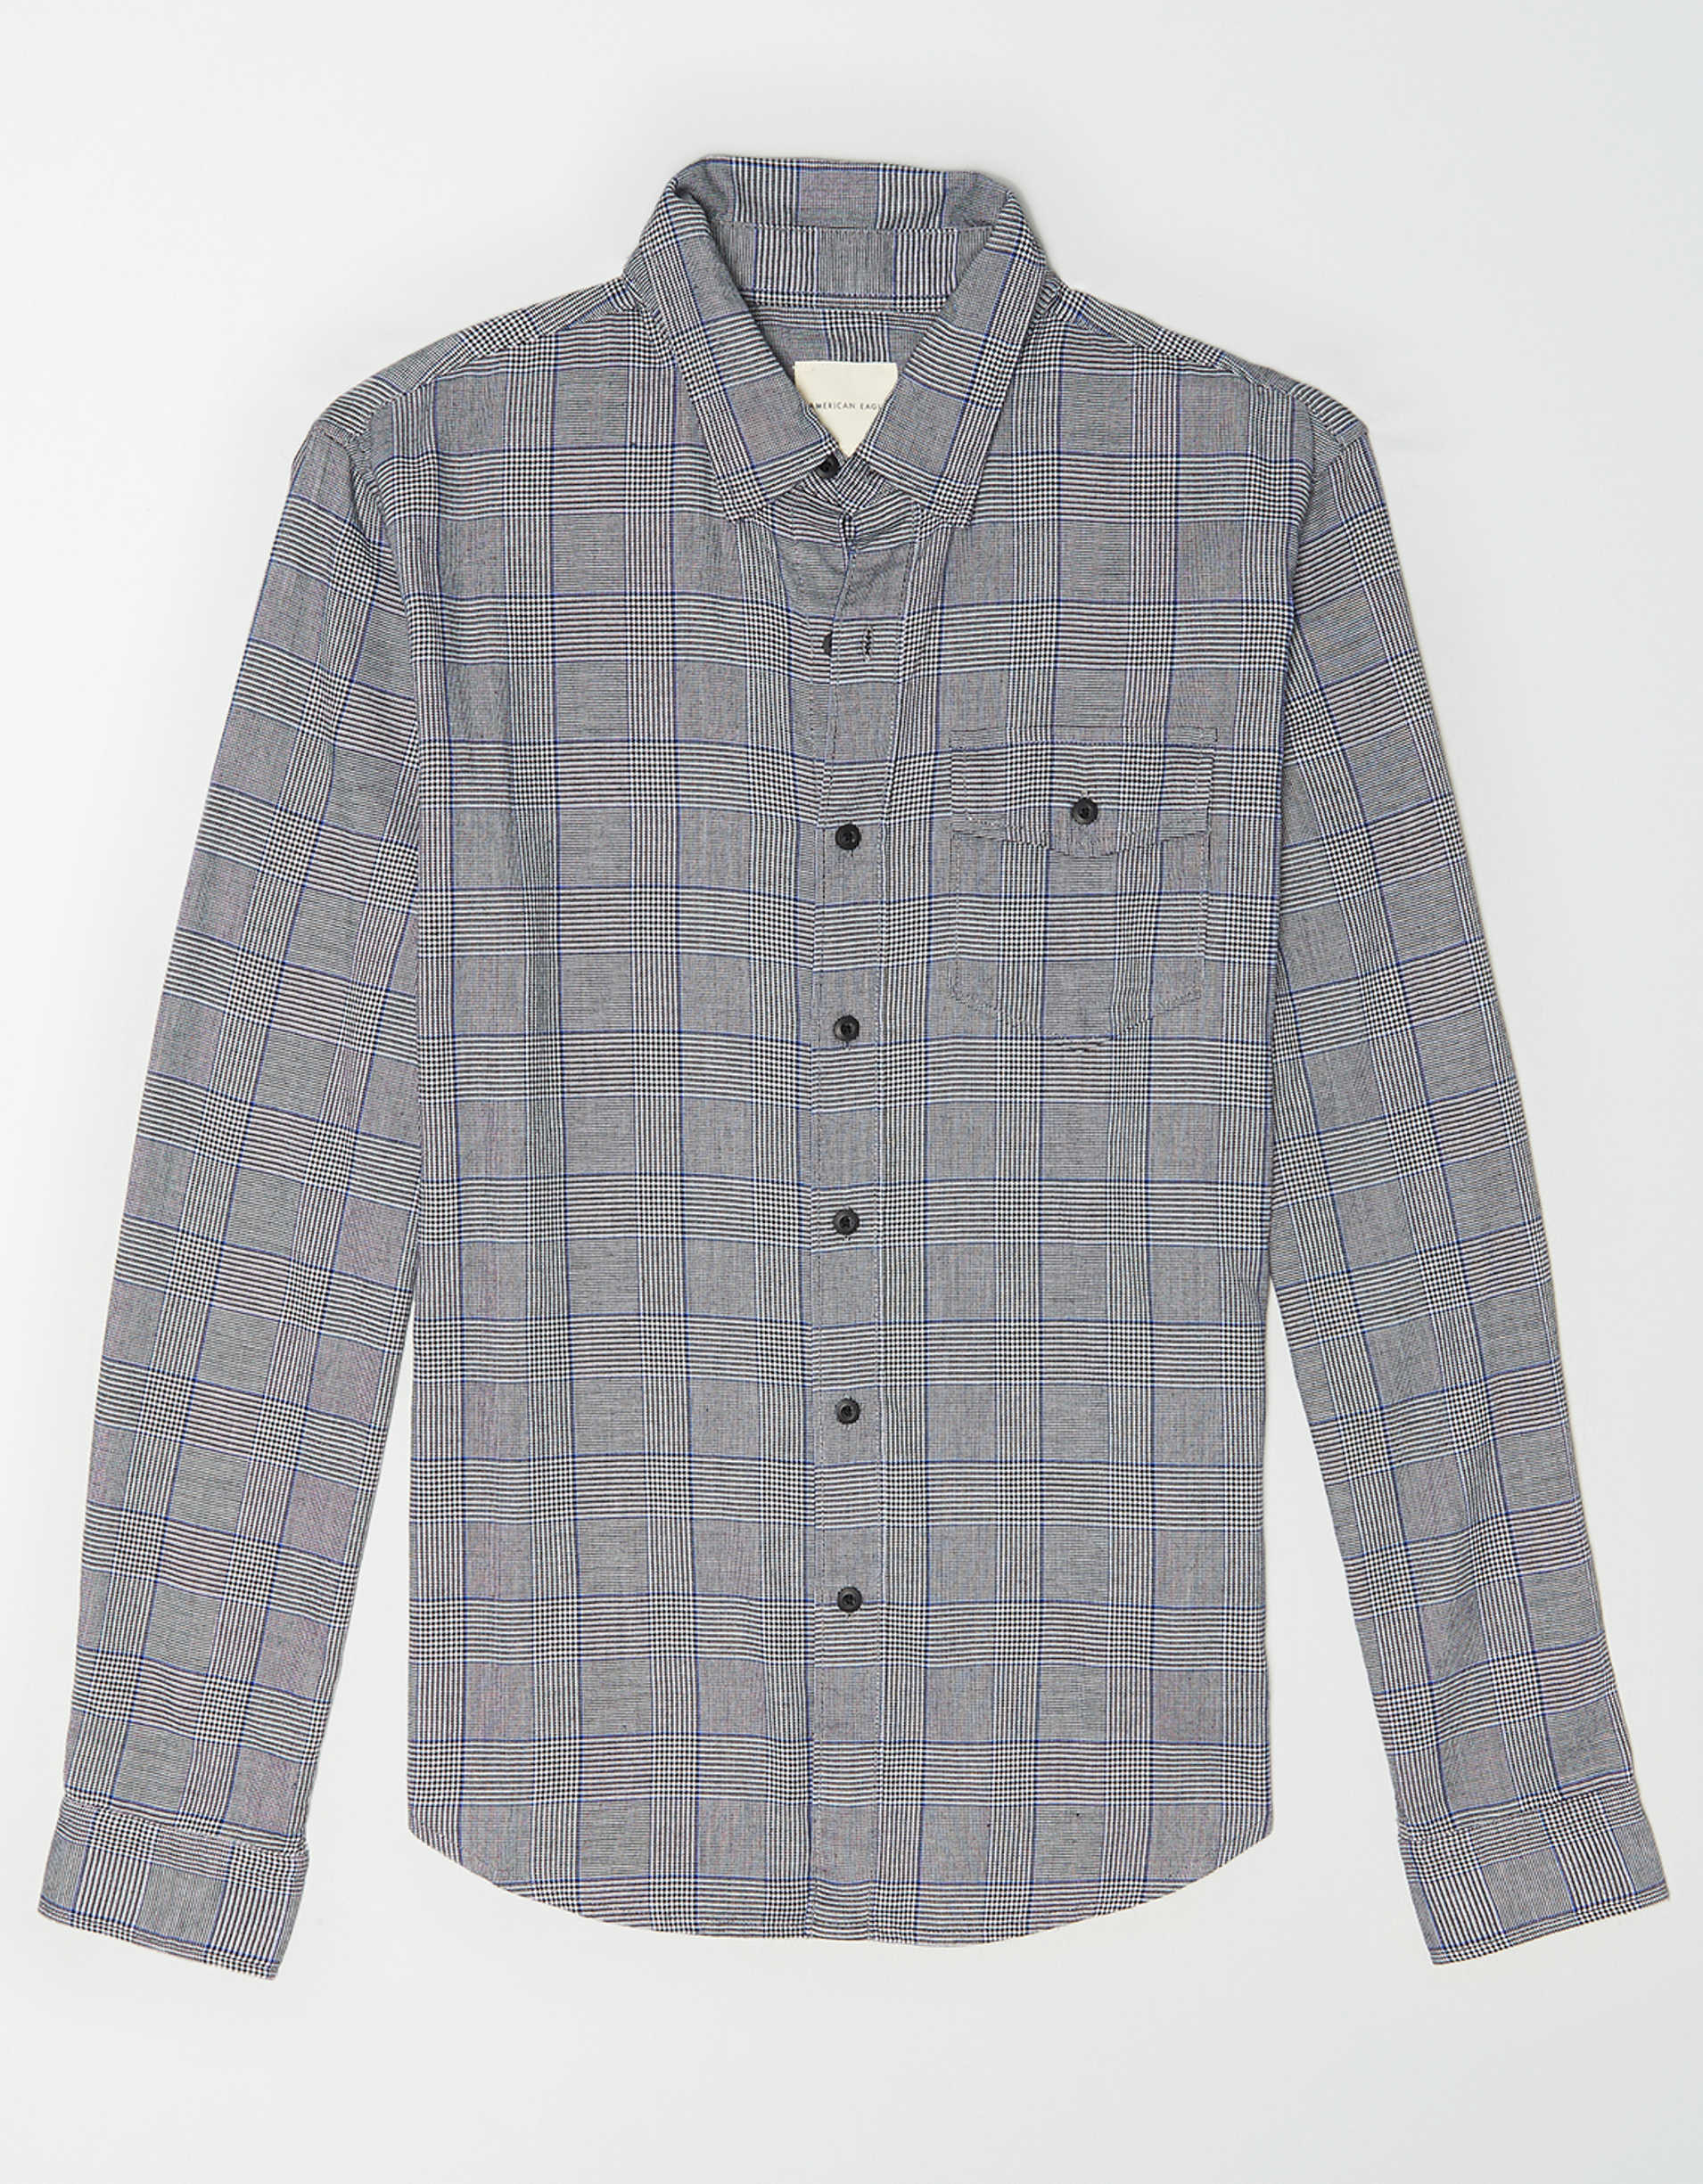 AE Brushed Twill Plaid Button Up Shirt